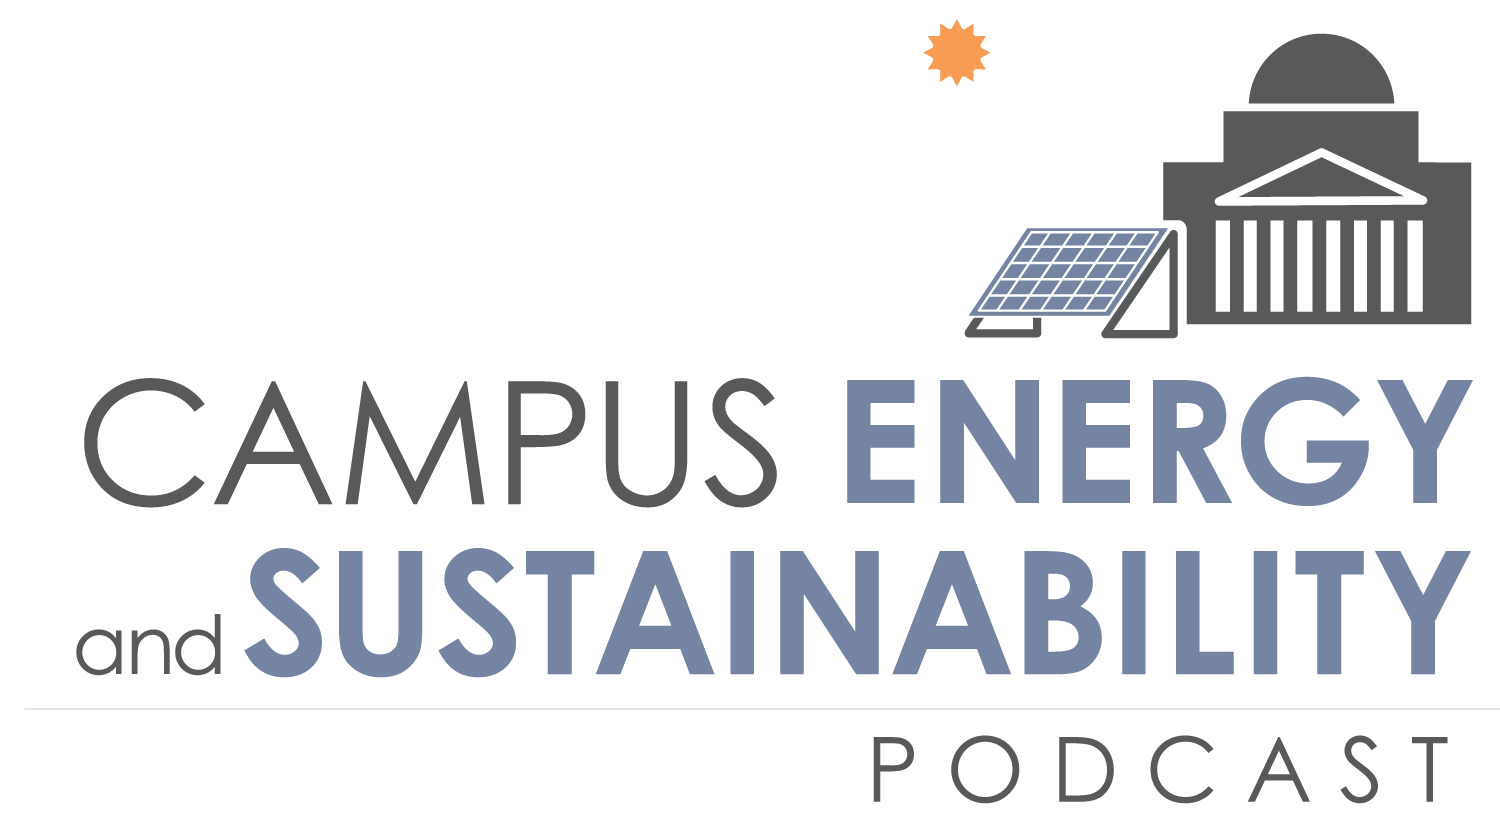 Campus Energy and Sustainability Podcast